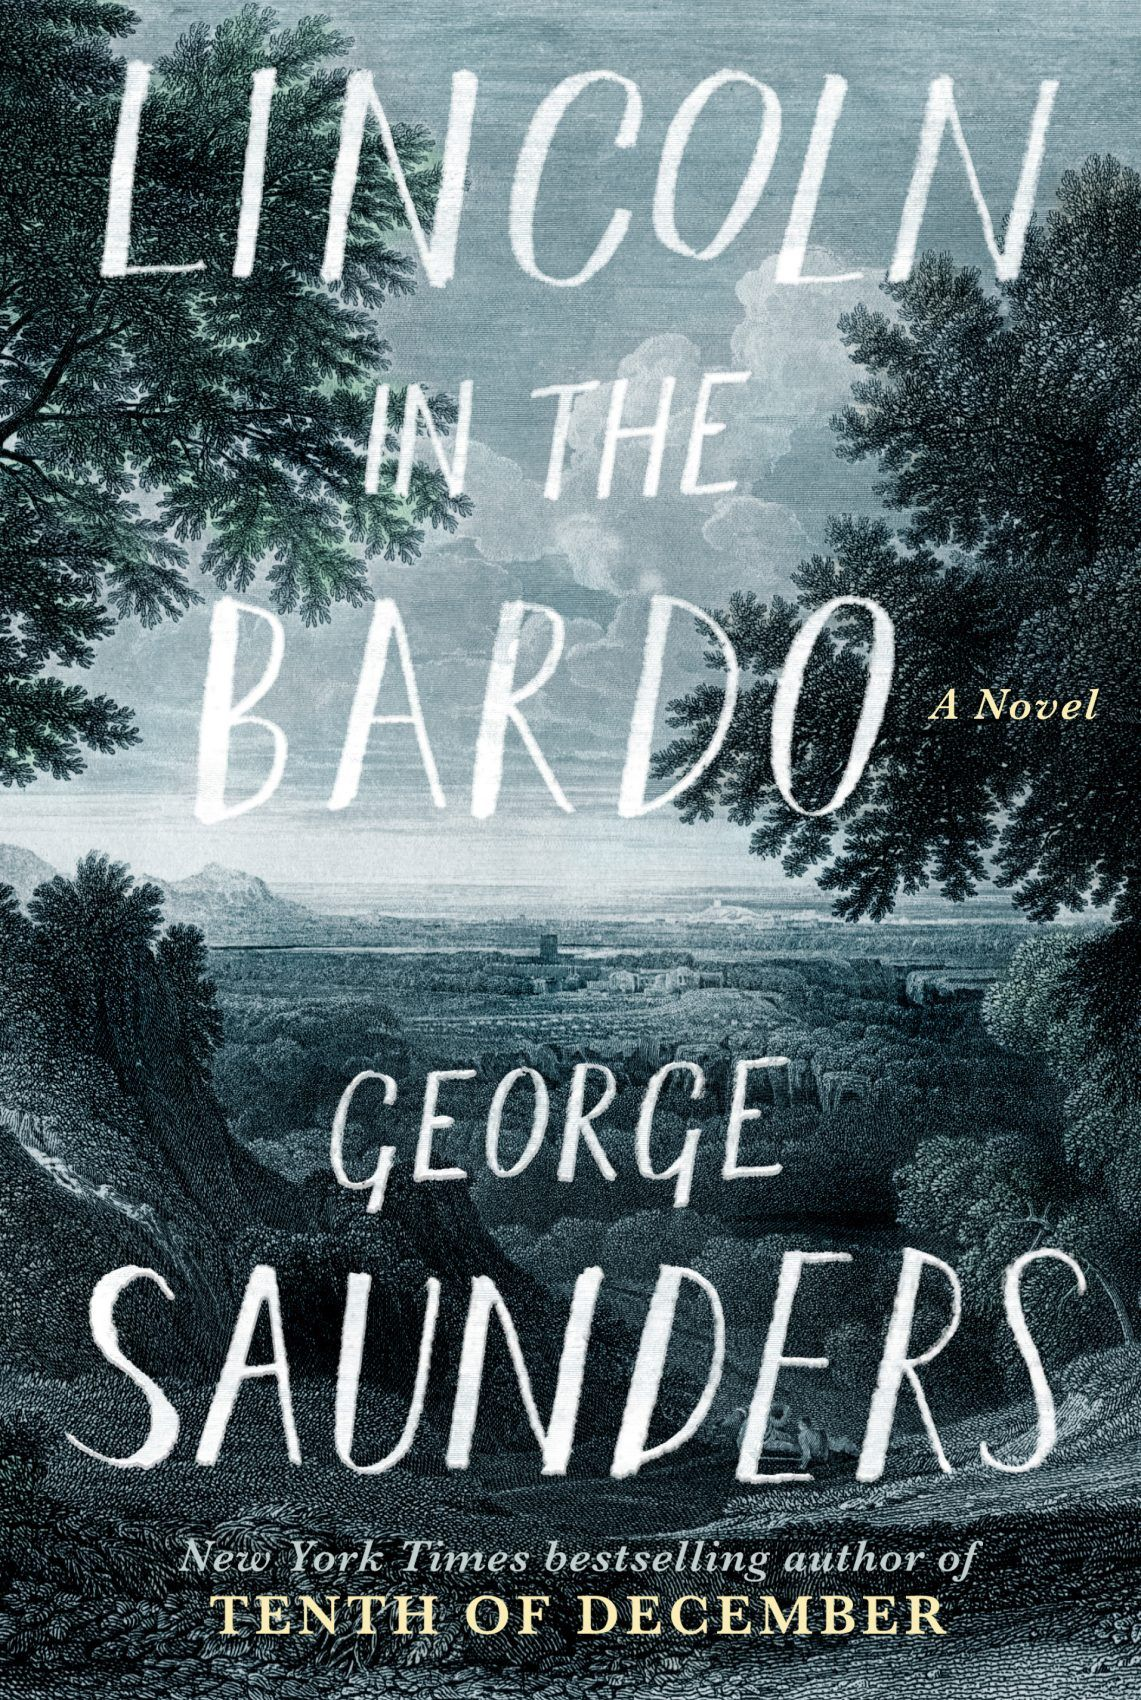 download pdf linkcoln in the bardo by george saunders free